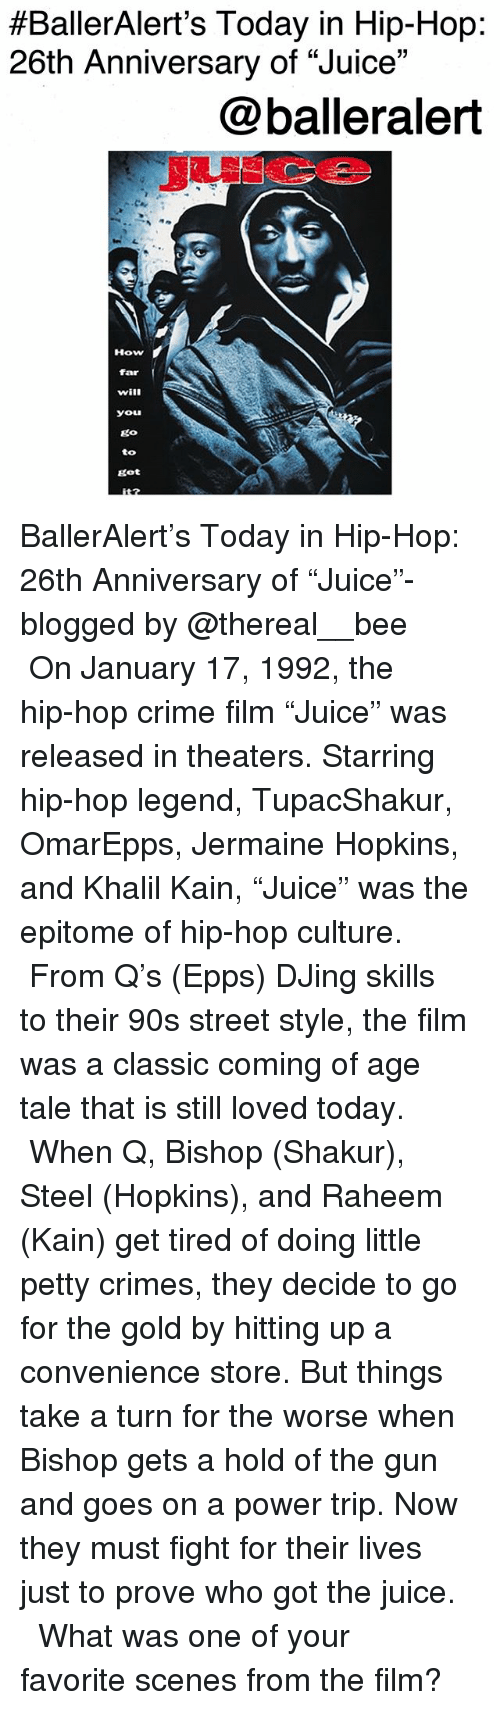 "Crime, Jermaine Hopkins, and Juice:  #BallerAlert's Today in Hip-Hop:  26th Anniversary of ""Juice""  @balleralert  How  far  will  you  go  to  got BallerAlert's Today in Hip-Hop: 26th Anniversary of ""Juice""-blogged by @thereal__bee ⠀⠀⠀⠀⠀⠀⠀ ⠀⠀⠀⠀ On January 17, 1992, the hip-hop crime film ""Juice"" was released in theaters. Starring hip-hop legend, TupacShakur, OmarEpps, Jermaine Hopkins, and Khalil Kain, ""Juice"" was the epitome of hip-hop culture. ⠀⠀⠀⠀⠀⠀⠀ ⠀⠀⠀⠀ From Q's (Epps) DJing skills to their 90s street style, the film was a classic coming of age tale that is still loved today. ⠀⠀⠀⠀⠀⠀⠀ ⠀⠀⠀⠀ When Q, Bishop (Shakur), Steel (Hopkins), and Raheem (Kain) get tired of doing little petty crimes, they decide to go for the gold by hitting up a convenience store. But things take a turn for the worse when Bishop gets a hold of the gun and goes on a power trip. Now they must fight for their lives just to prove who got the juice. ⠀⠀⠀⠀⠀⠀⠀ ⠀⠀⠀⠀ What was one of your favorite scenes from the film?"